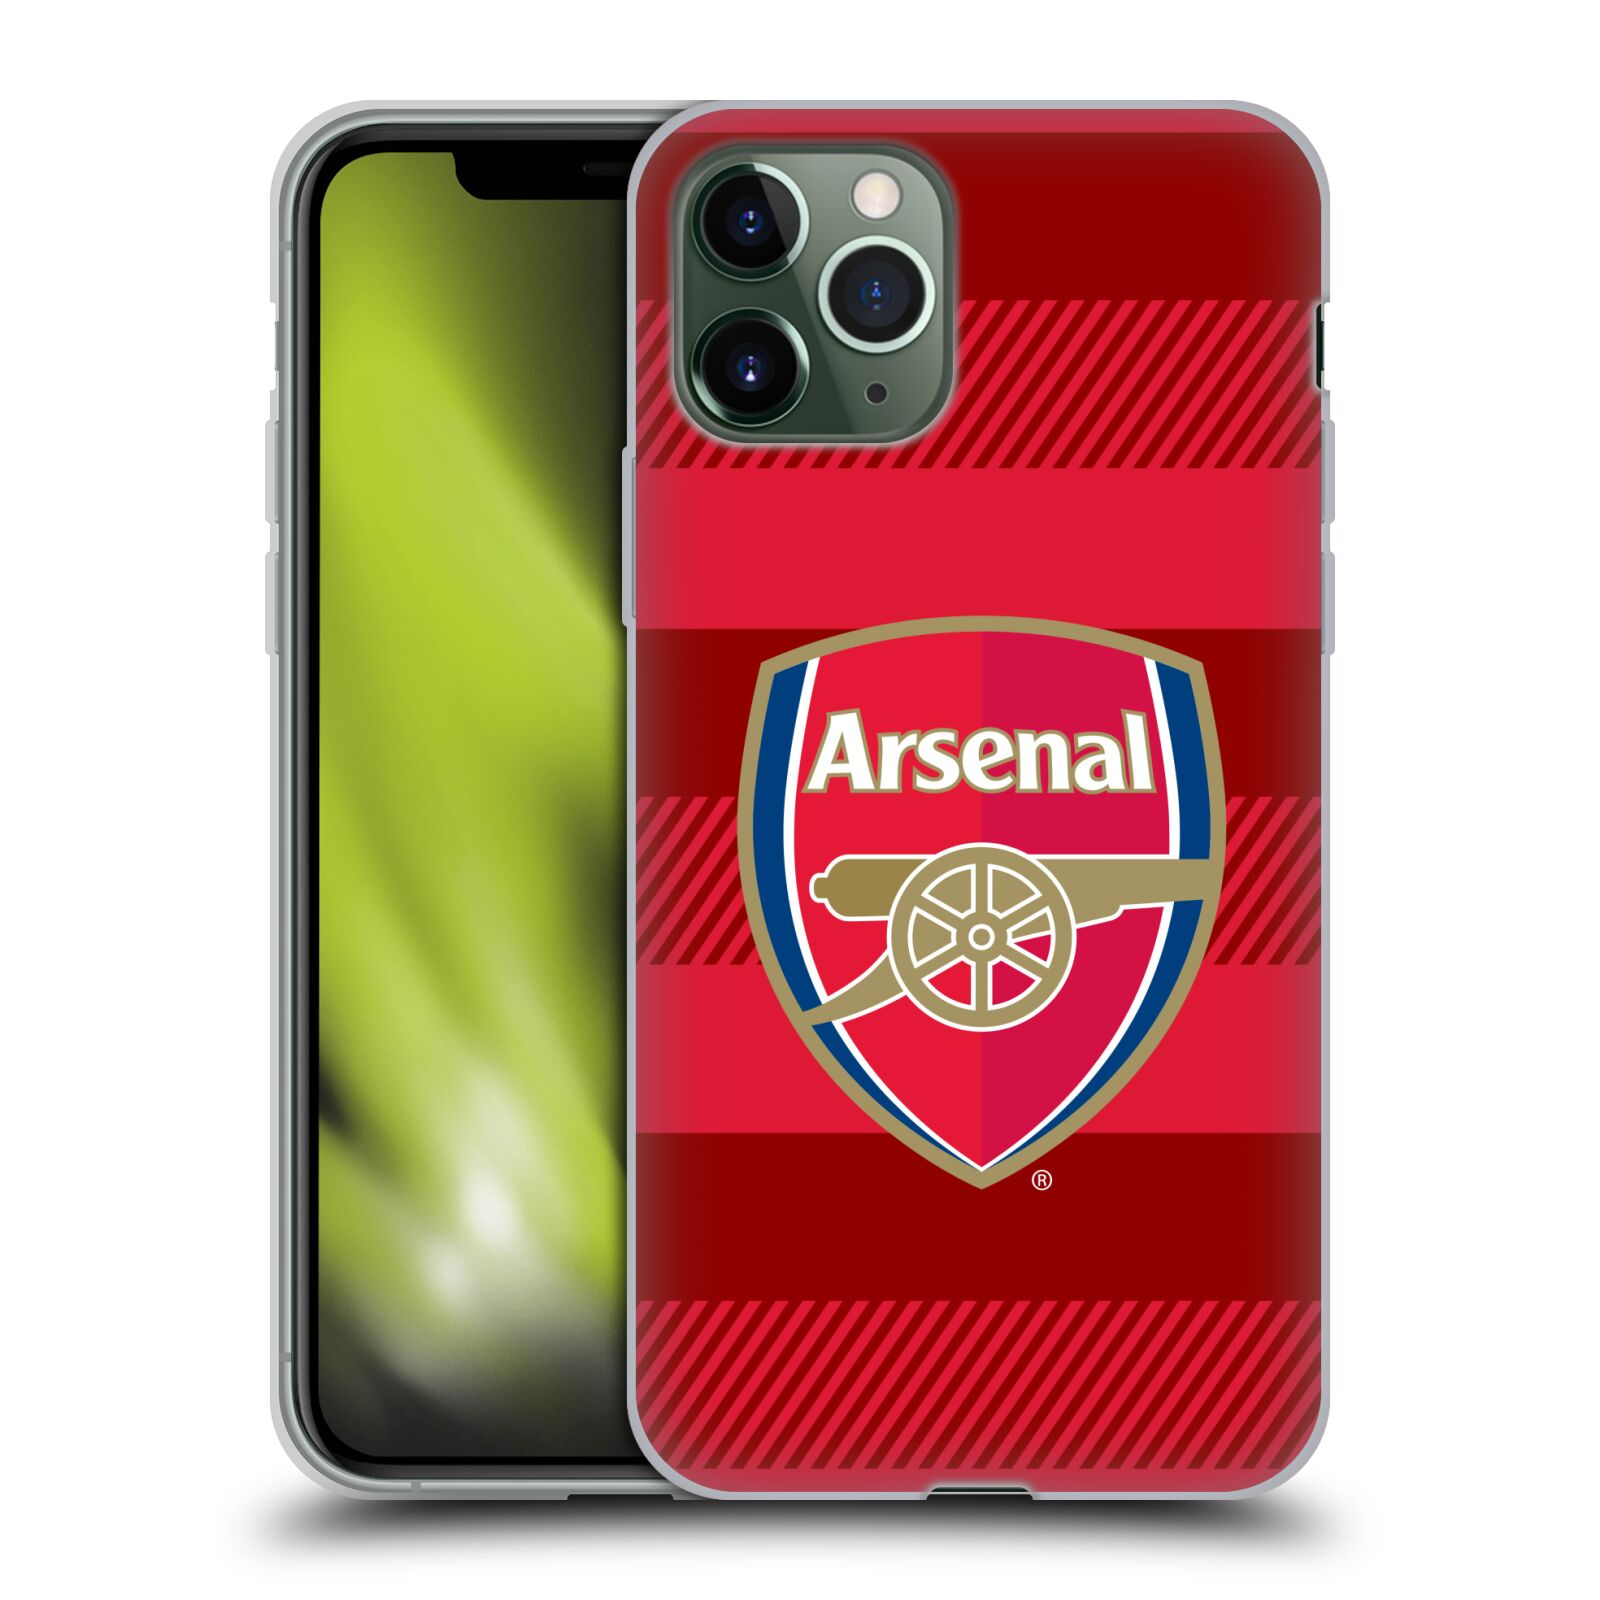 cover gucci iphone 7 originale | Silikonové pouzdro na mobil Apple iPhone 11 Pro - Head Case - Arsenal FC - Logo s pruhy